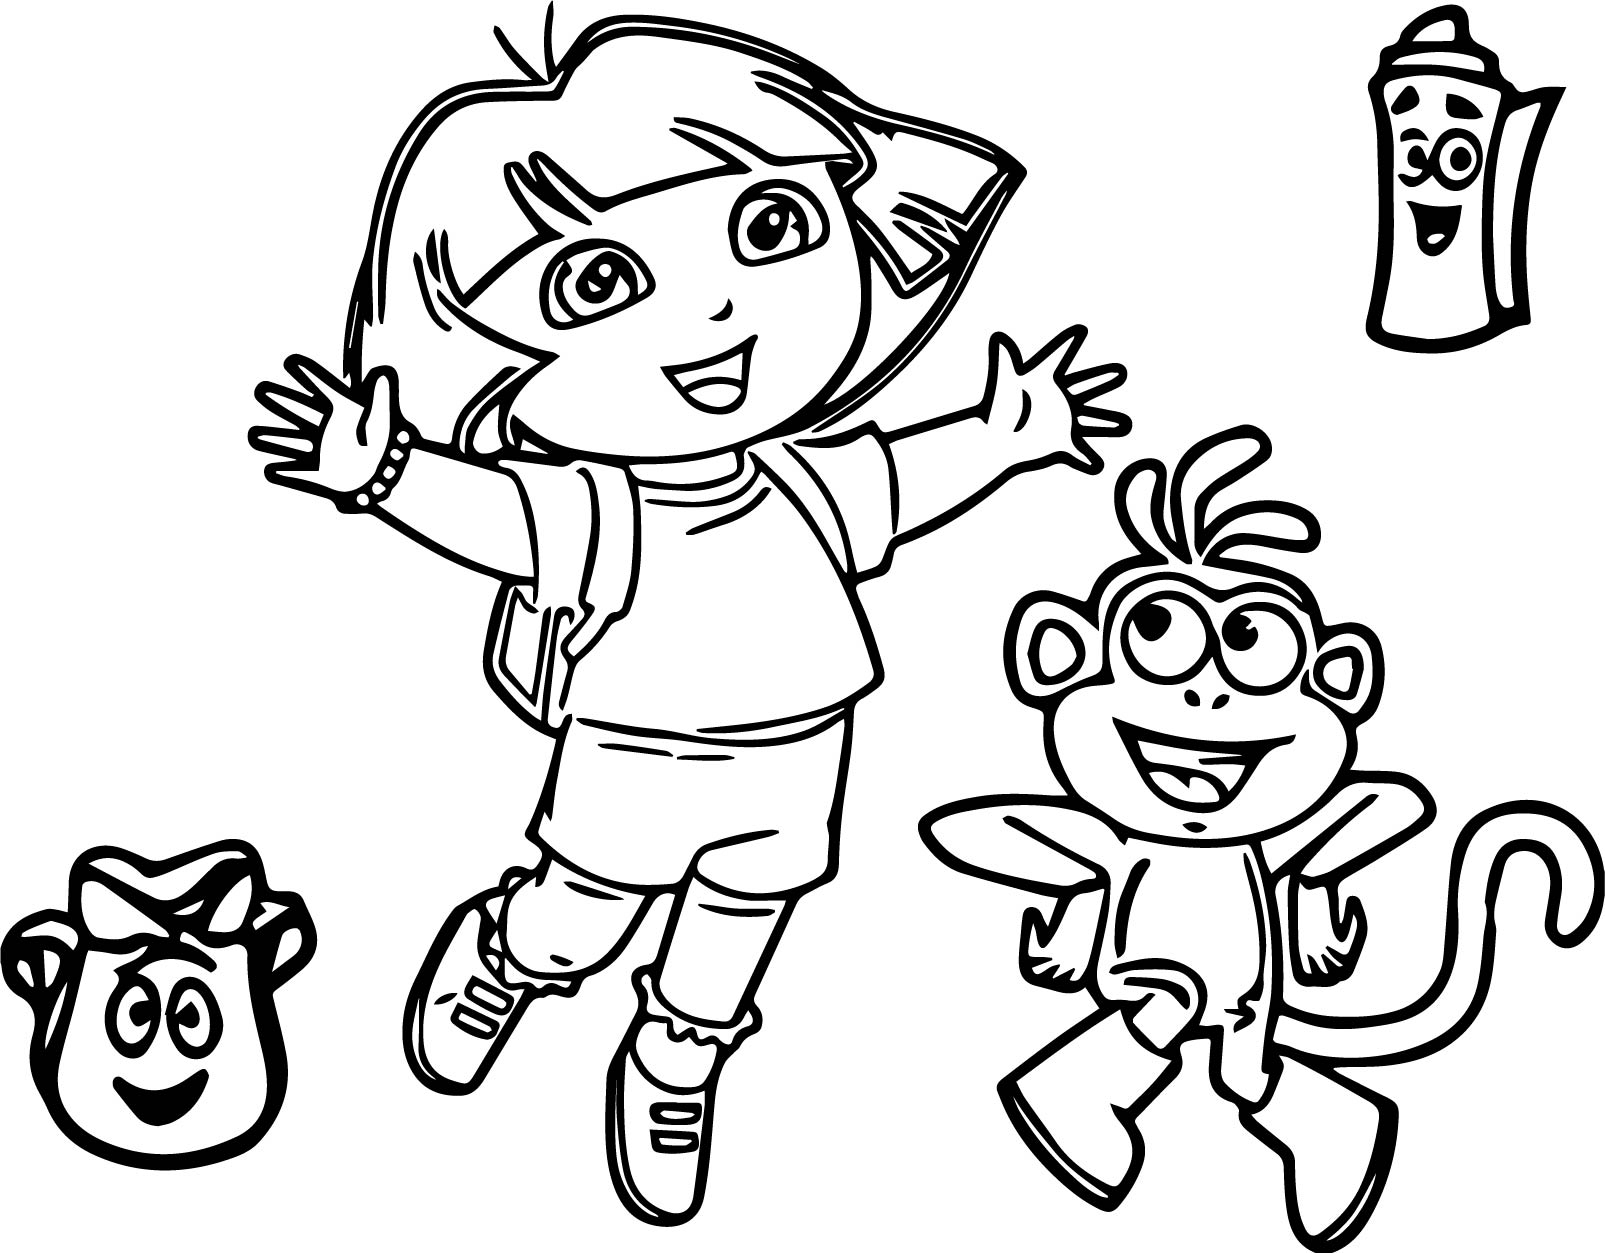 Adult Dora Coloring Page The Dora The Explorer Party Cartoon